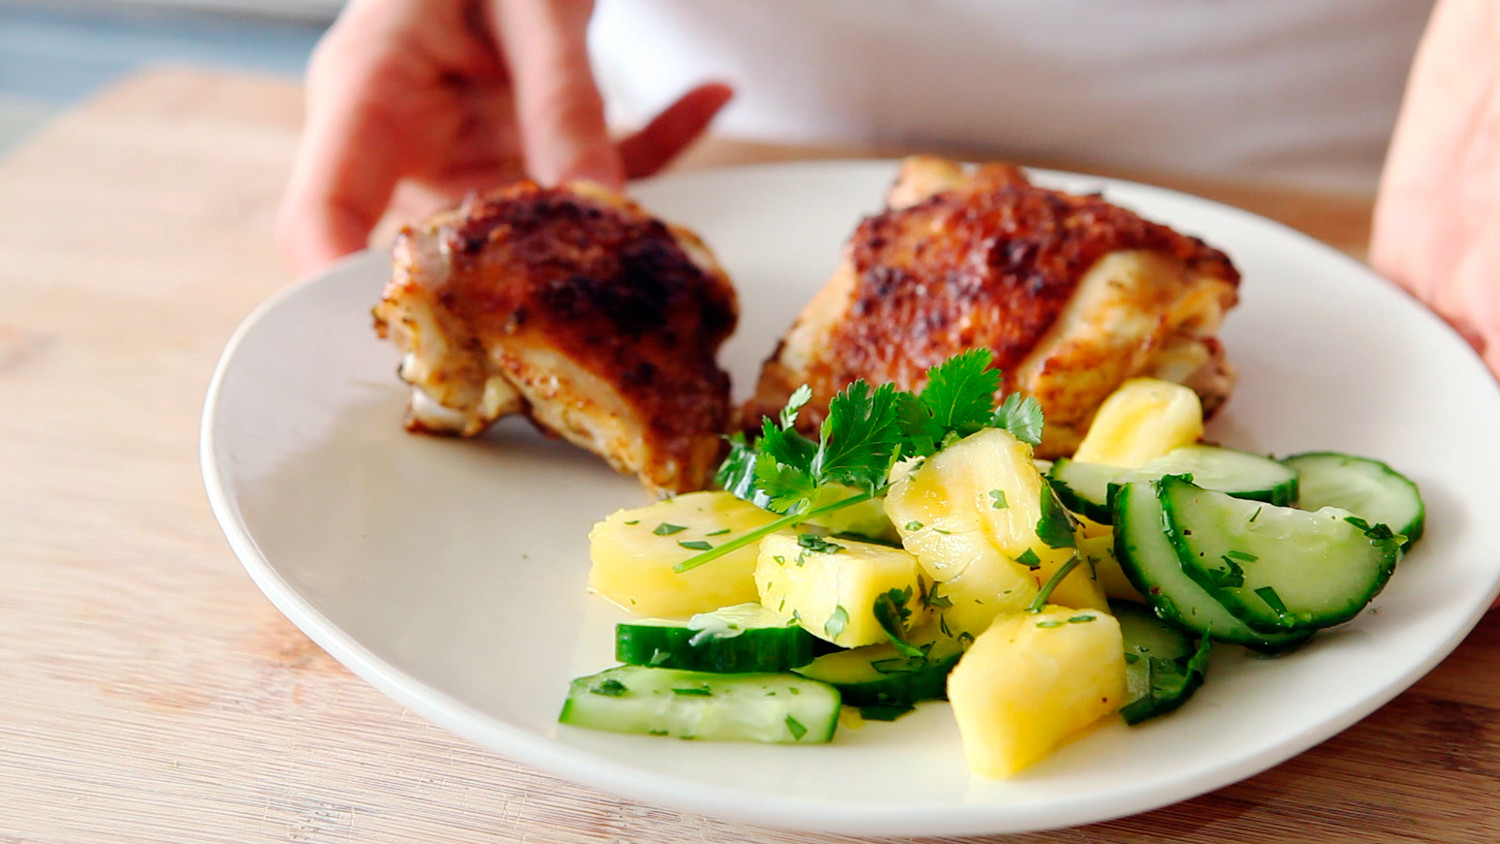 Video broiled chicken thighs with pineapple cucumber salad martha video broiled chicken thighs with pineapple cucumber salad martha stewart forumfinder Choice Image